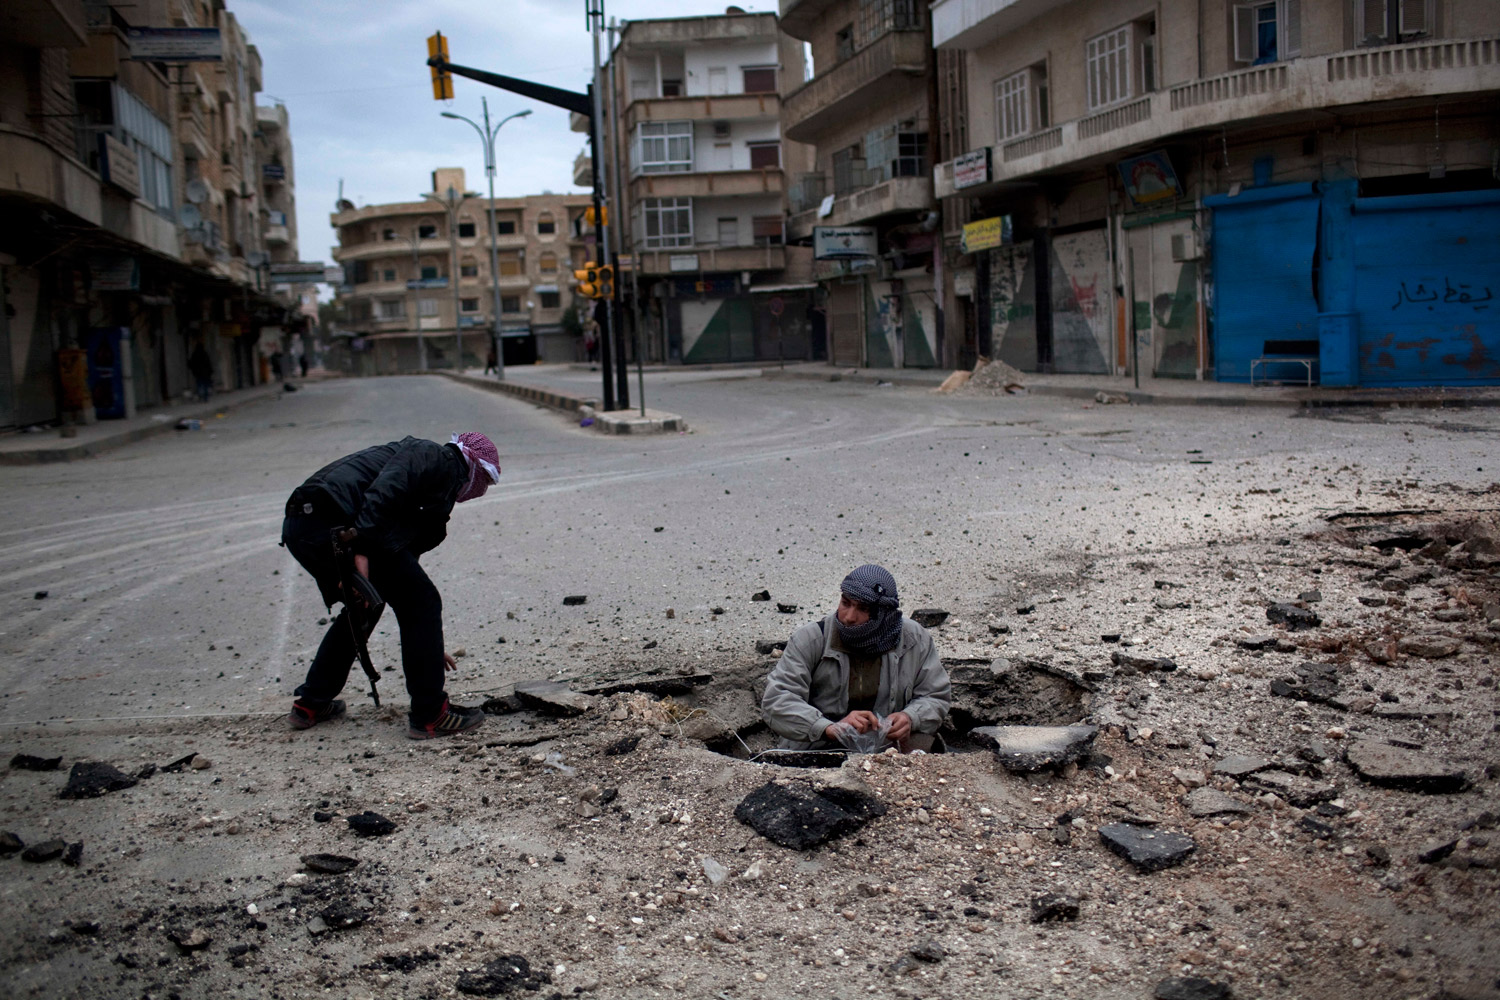 March 11, 2012. Syrian rebels plant a makeshift explosive device to destroy a Syrian Army tank during a day of heavy fighting with Syrian Army forces in Idlib. In the previous days, troops had encircled Idlib, and tank shells pounded the city from dawn until evening.